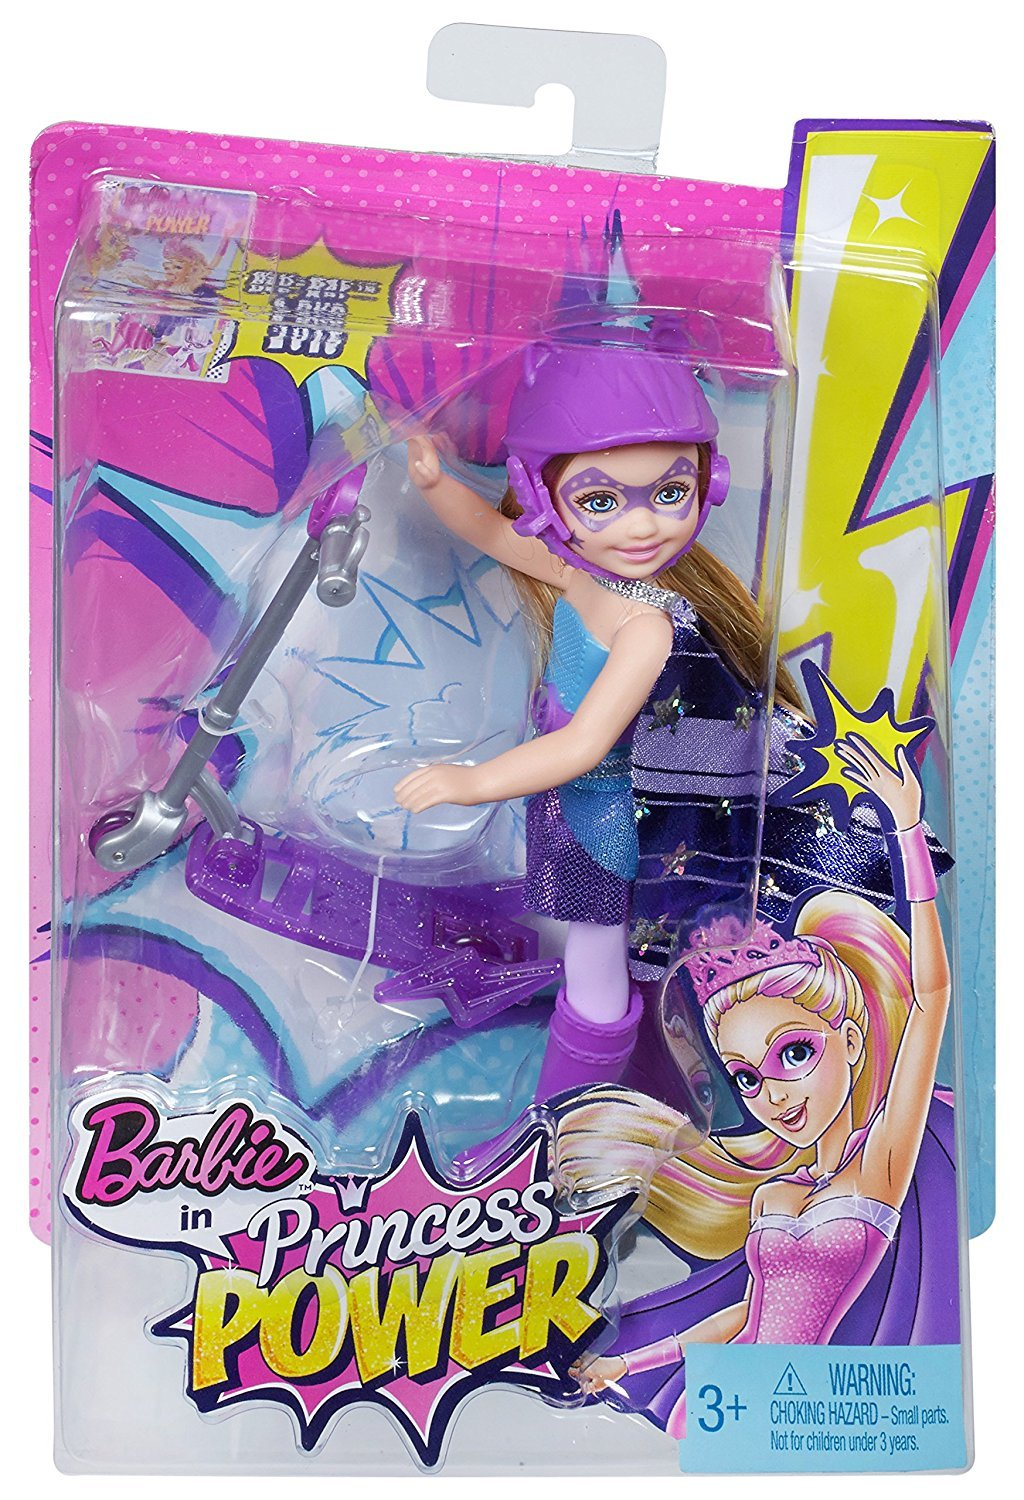 Barbie in Princess Power Scooter Doll: Kira